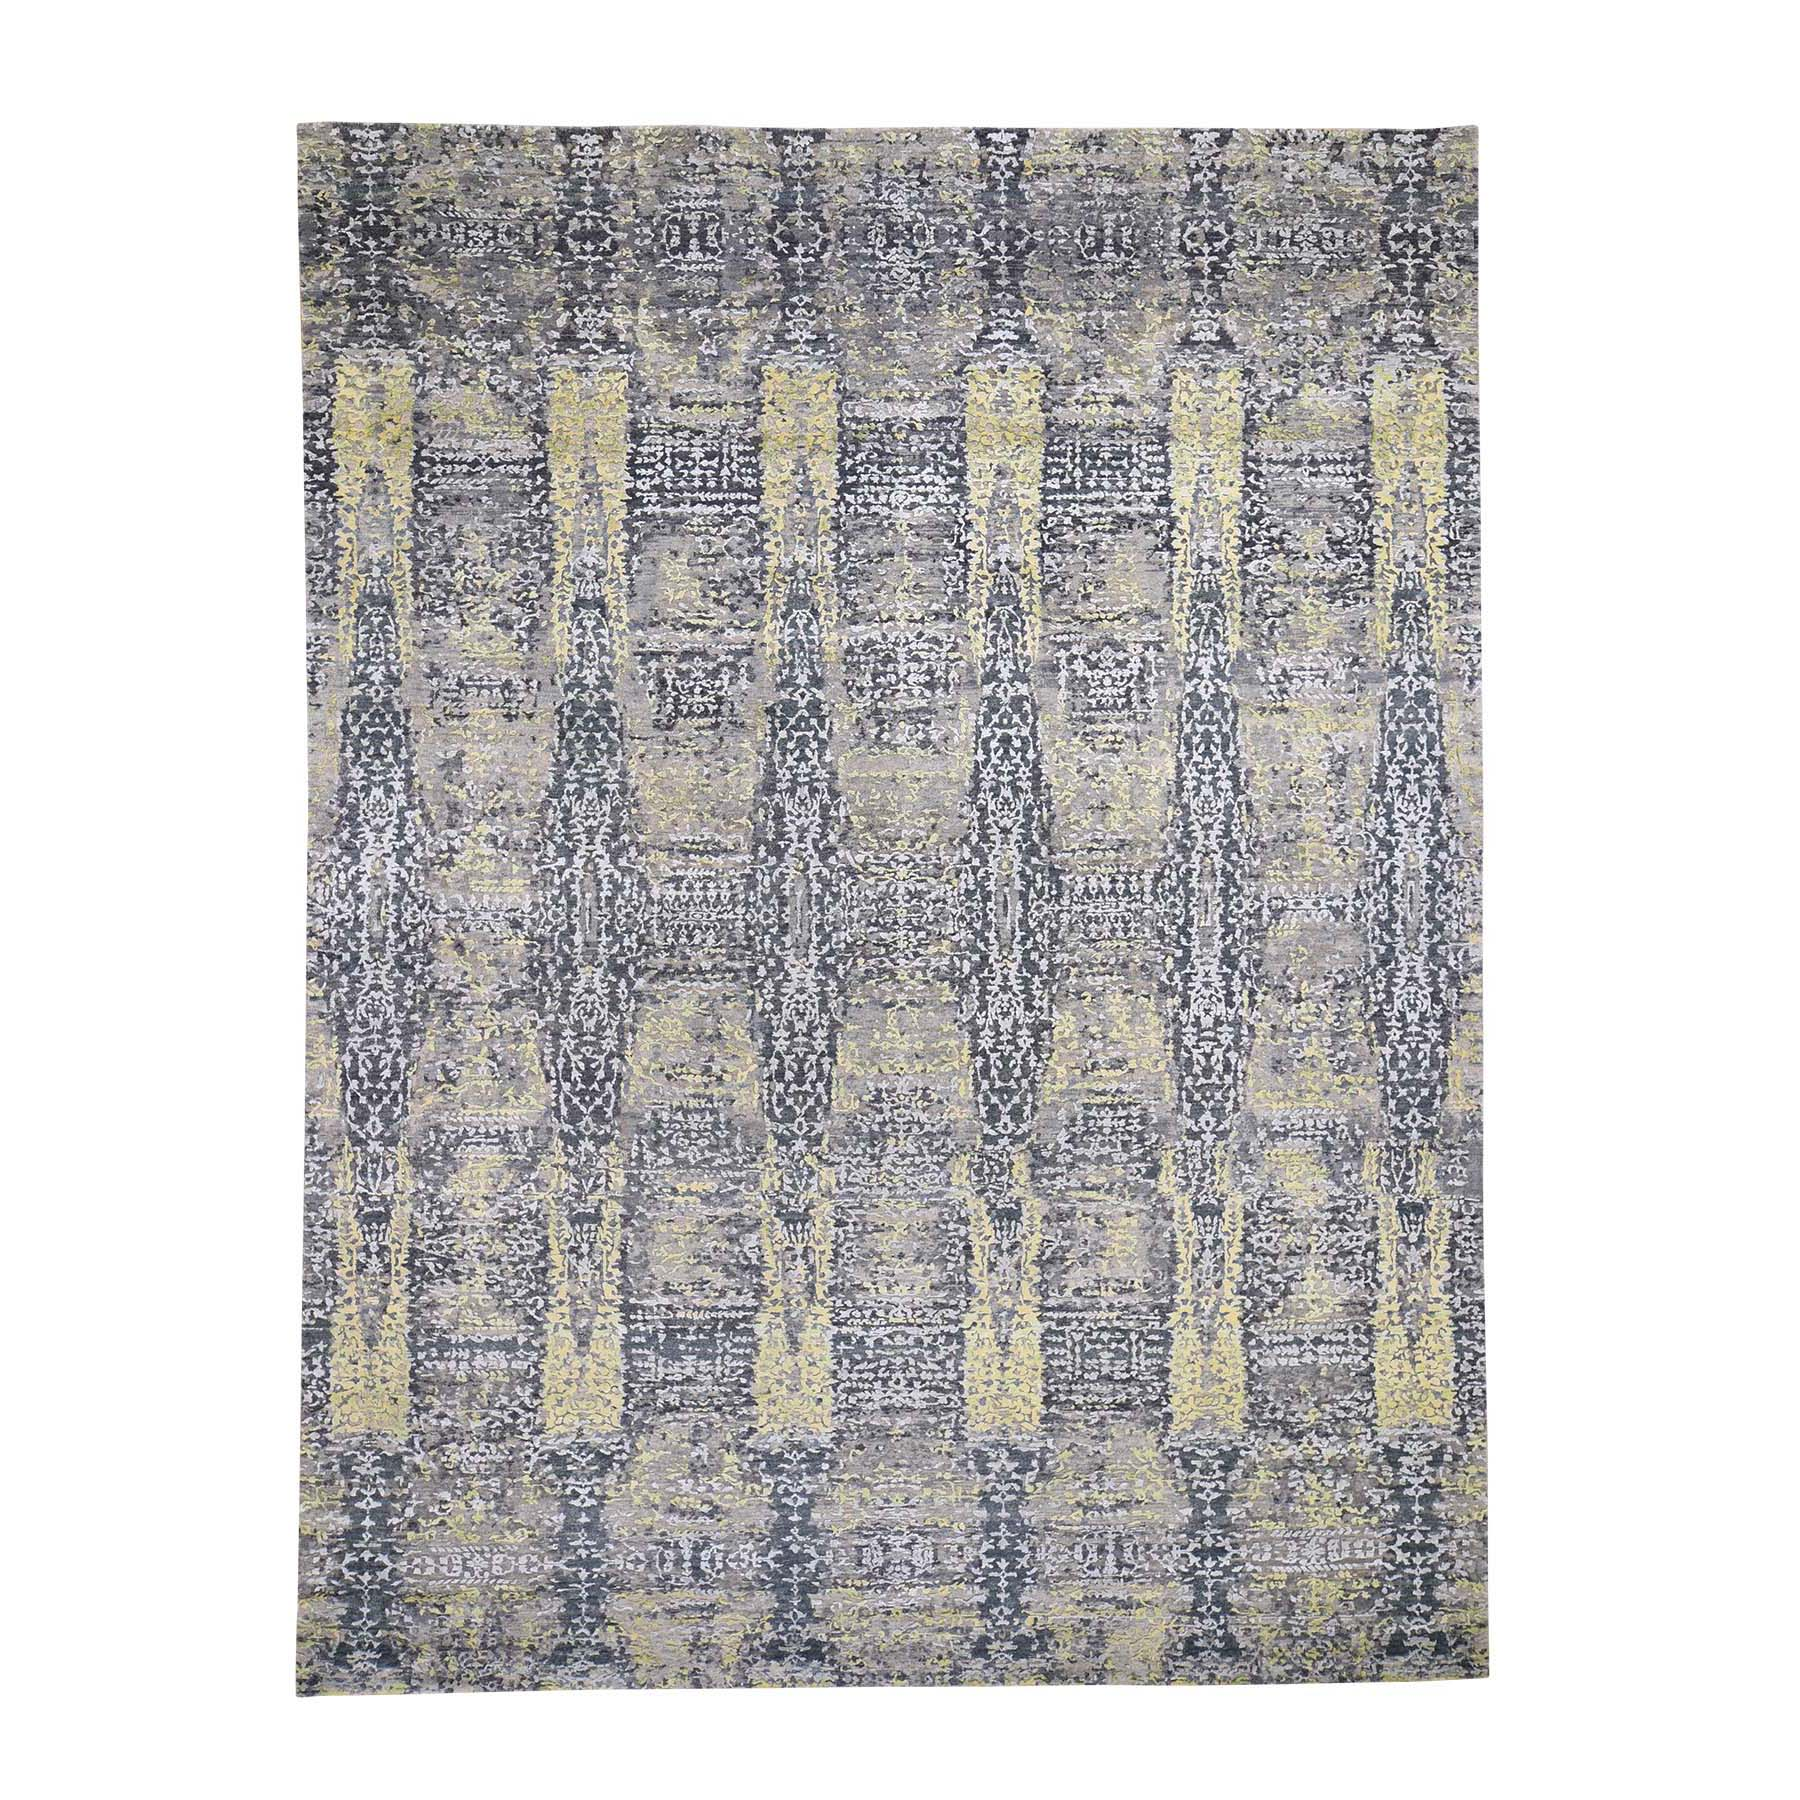 "8'10""x11'9"" Wool And Silk Abstract Design Hand-Knotted Oriental Rug"